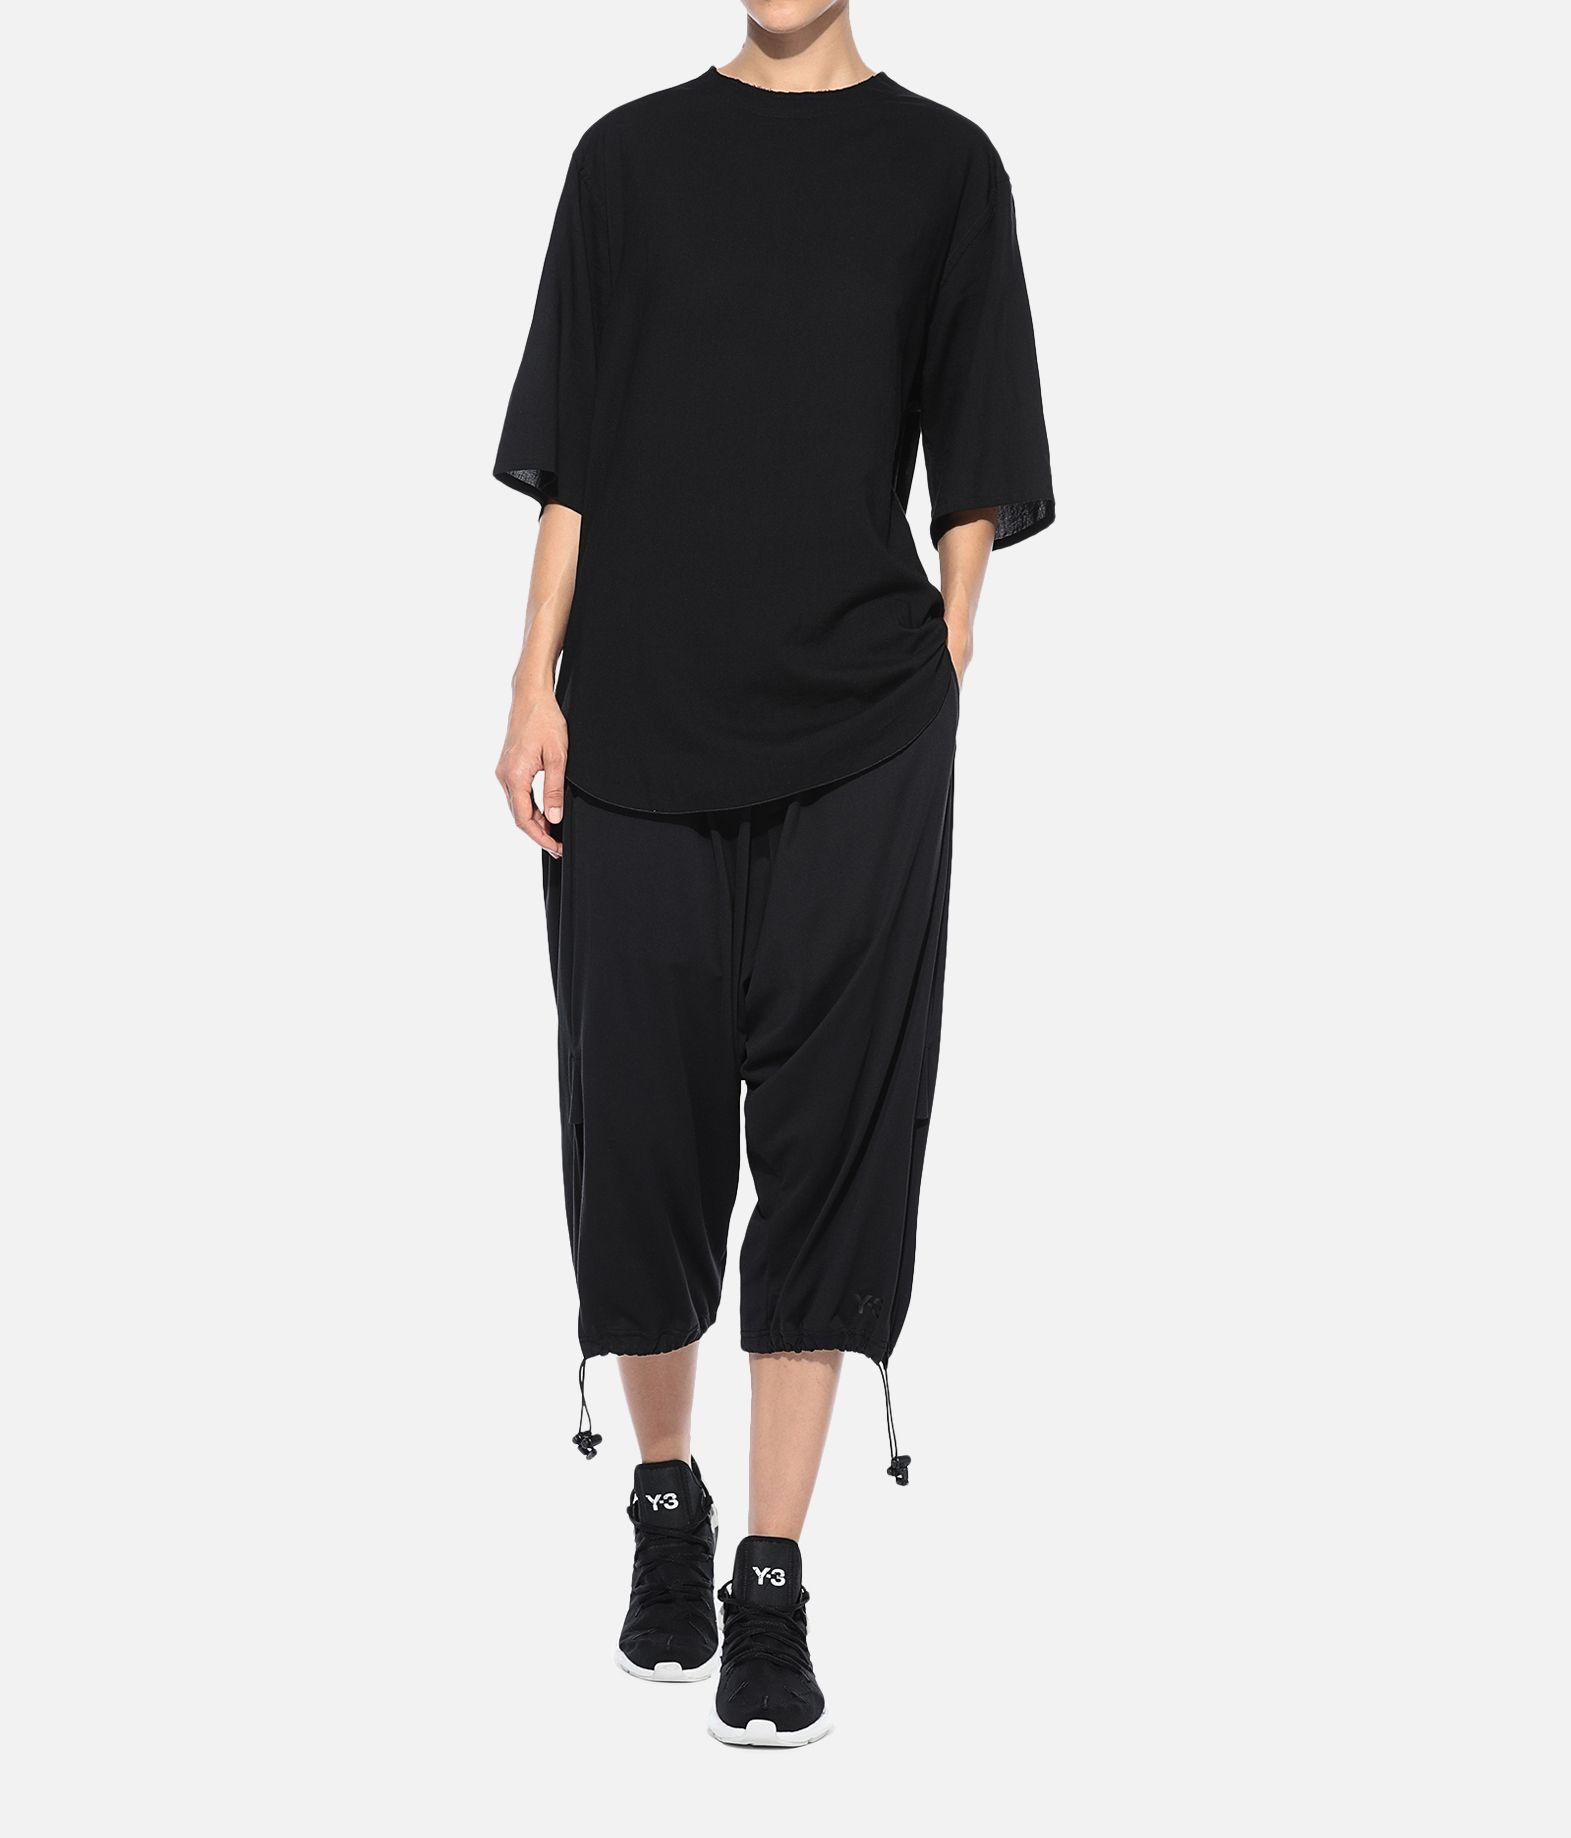 Y-3 Y-3 Long Tee Short sleeve t-shirt Woman a